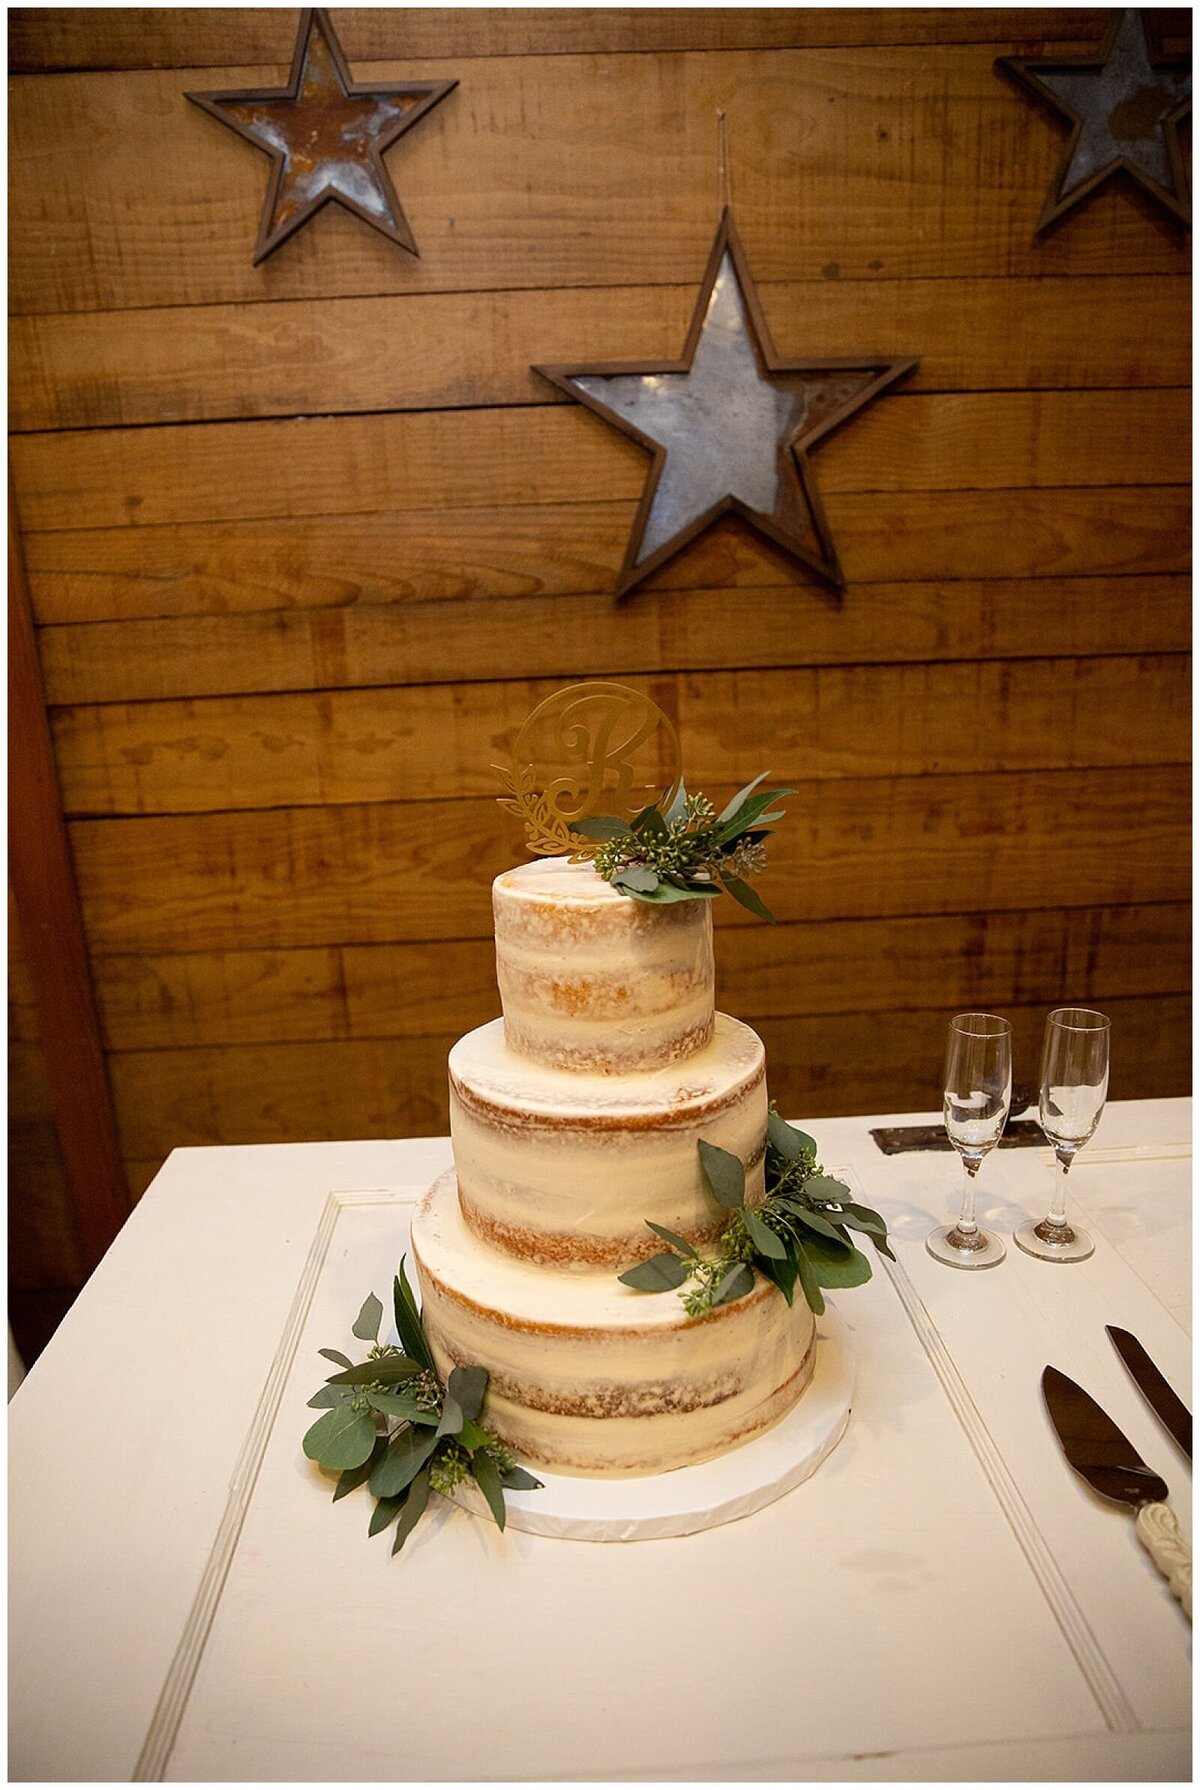 Rustic Greenery Indoor Outdoor Wedding at Emery's Buffalo Creek - Houston Wedding Venue_0131